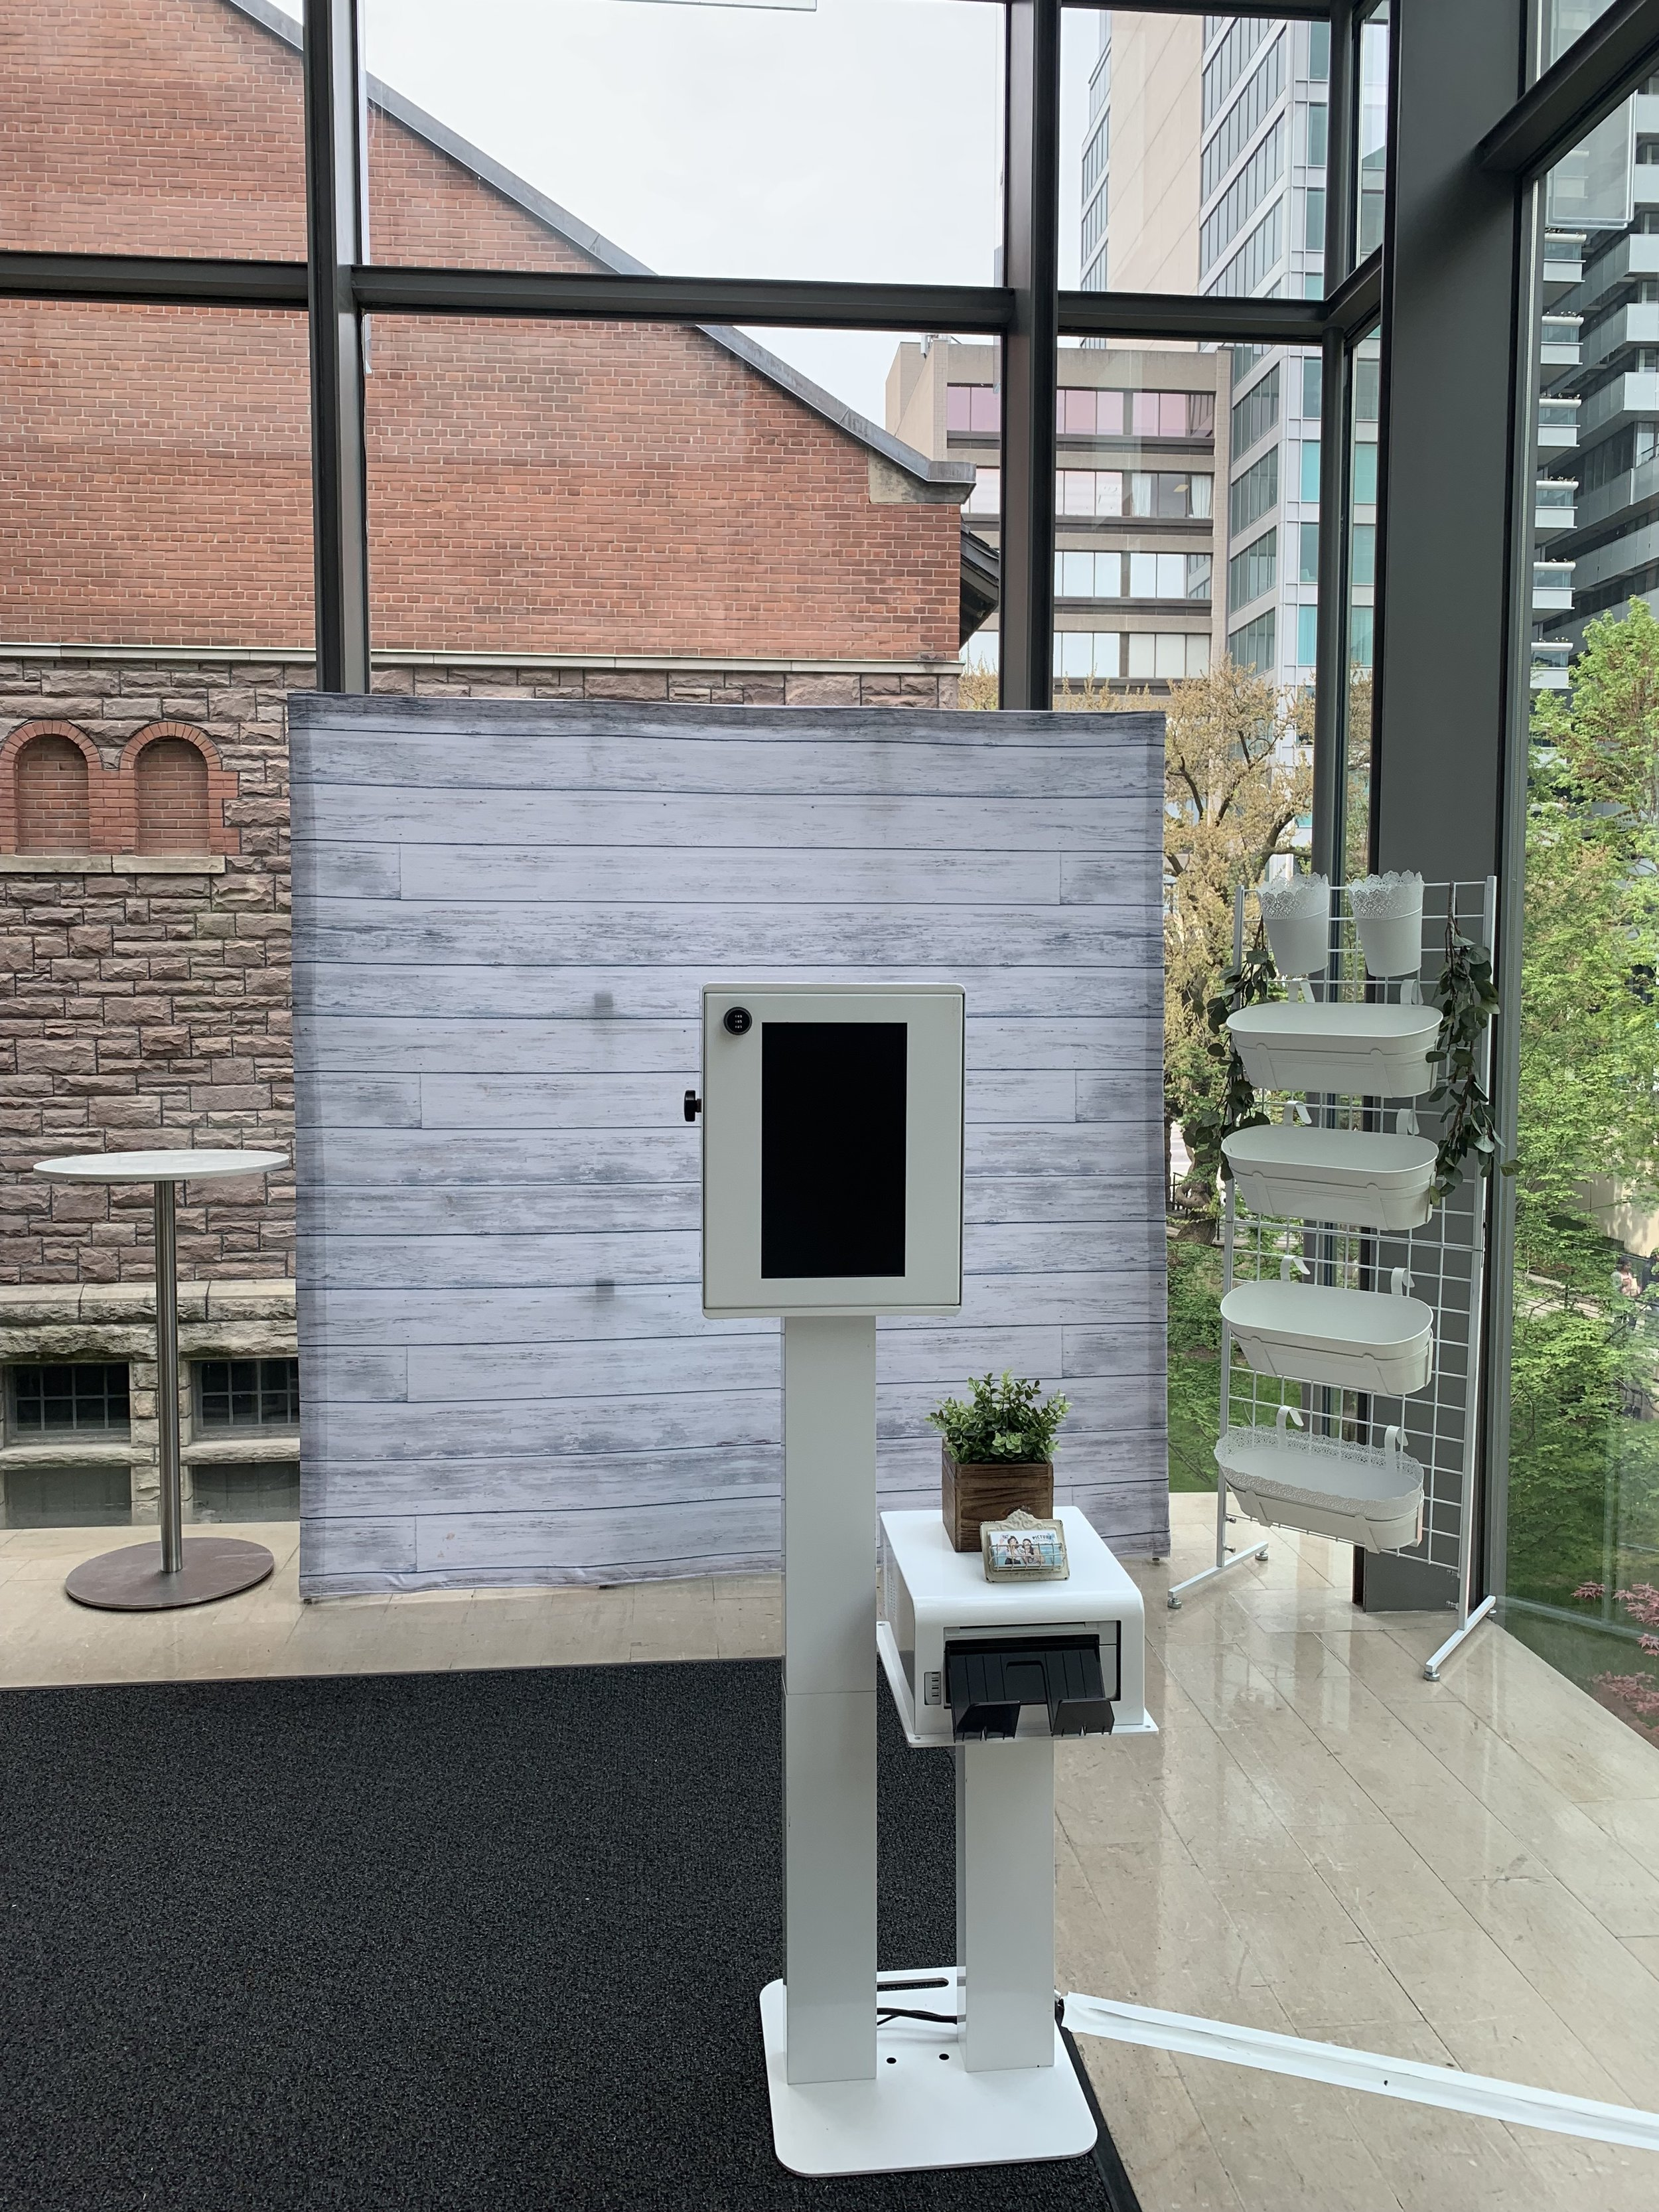 Toronto Wedding Photo Booth